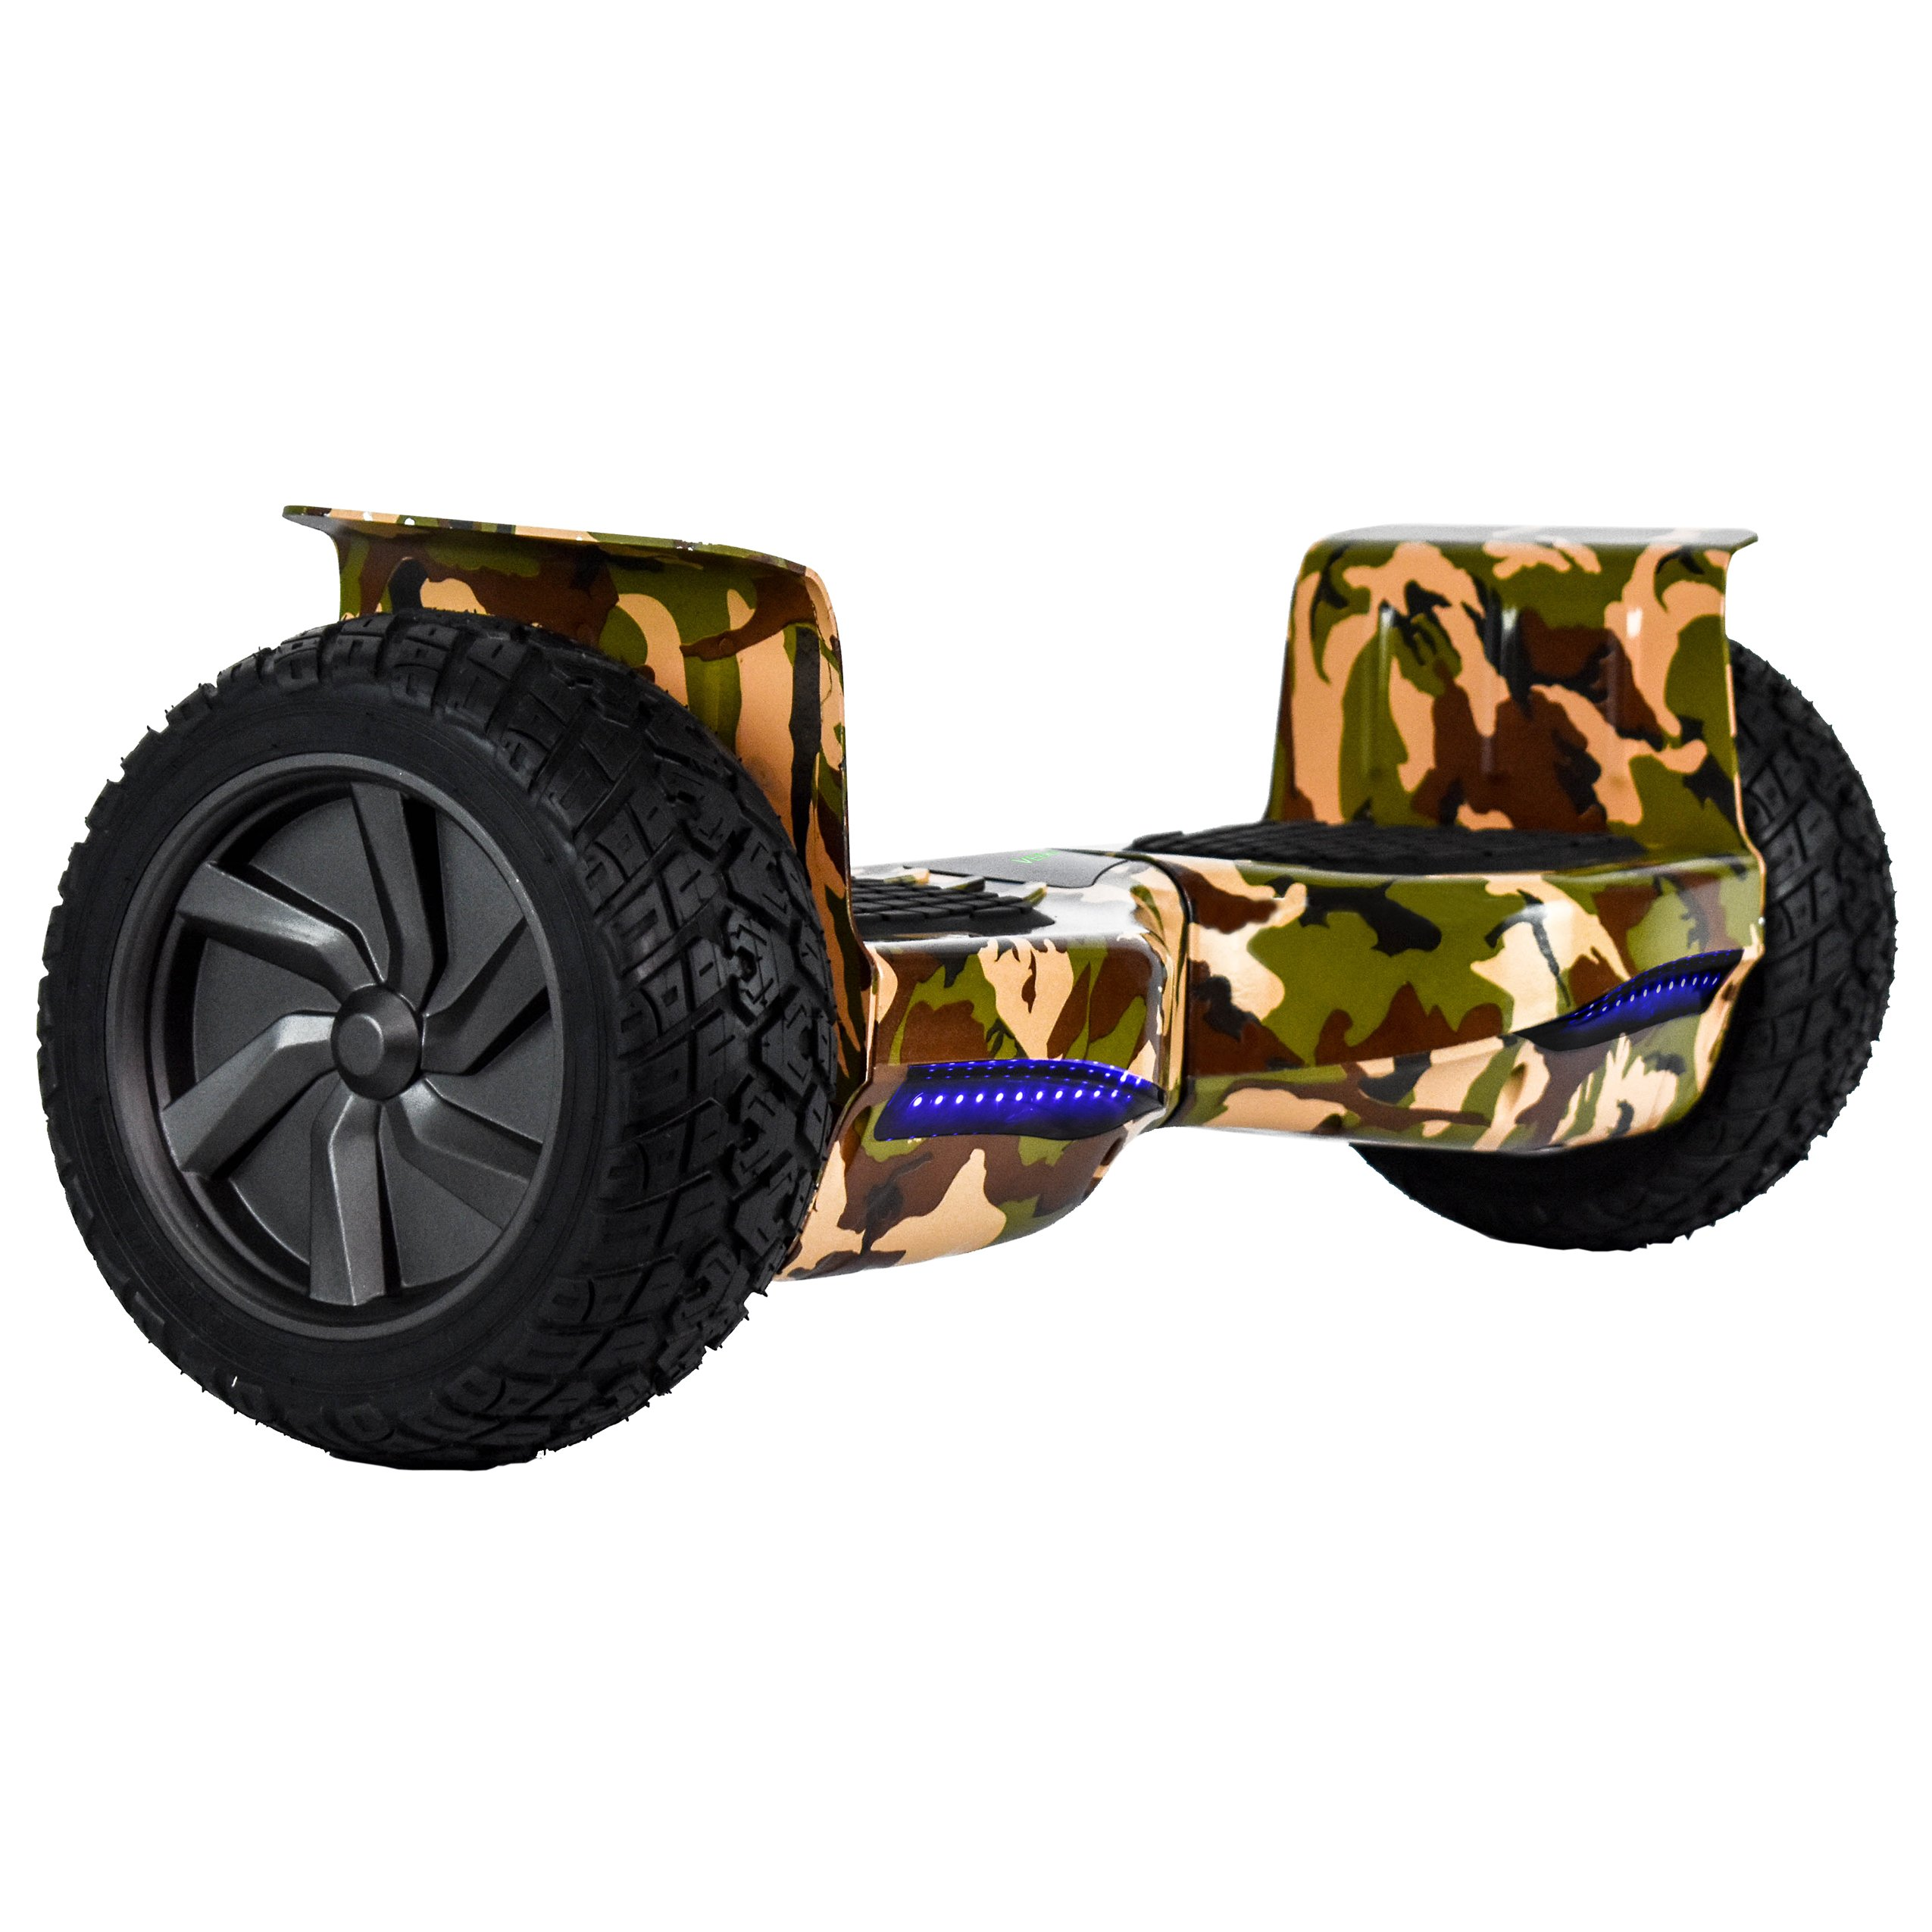 CHO All Terrain Black Rugged 8.5 Inch Wheels Hoverboard Off-Road Smart Self Balancing Electric Scooter With built-In Bluetooth Speaker LED Lights UL2272 Certified (Green Camouflage)